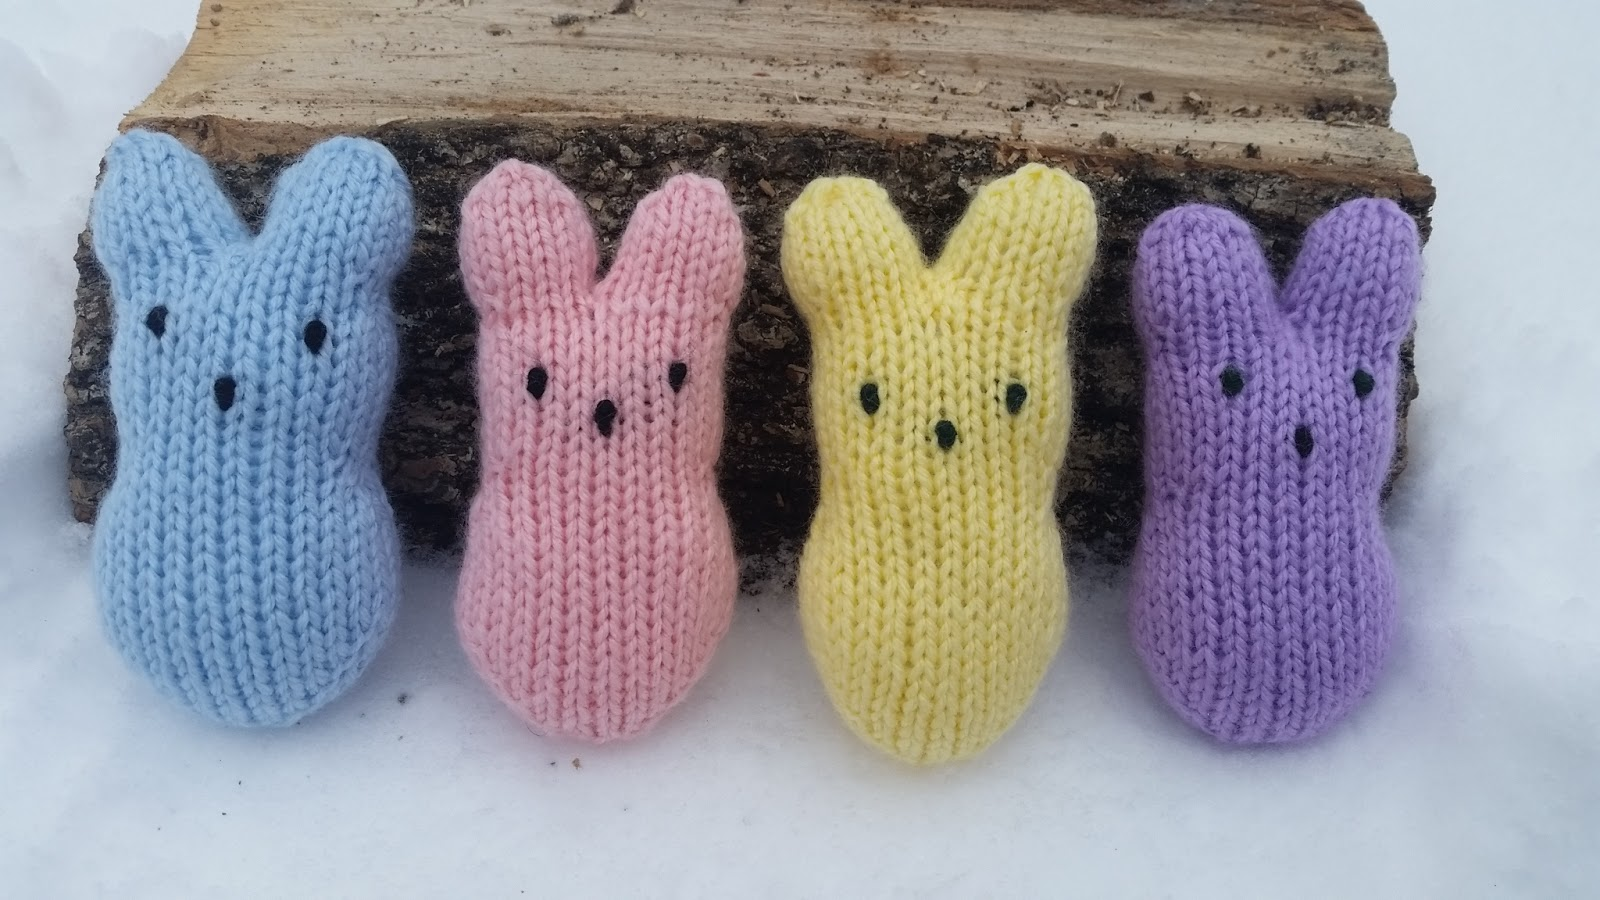 Knit peeps bunnies free pattern knit peeps bunny by ruth windover bankloansurffo Choice Image